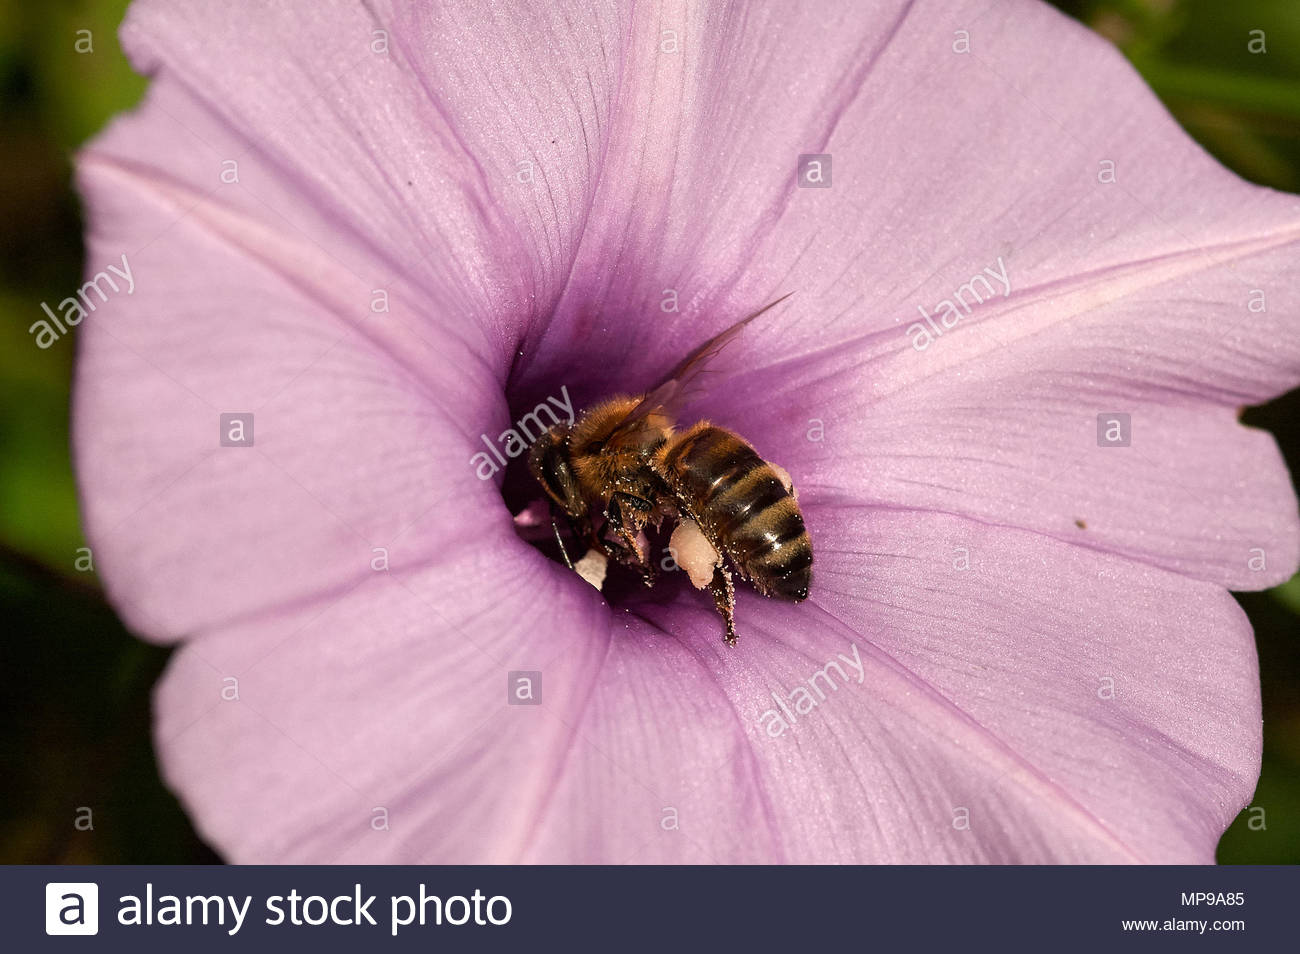 Macro image of a honey-bee pollinating a pink purple mauve Morning Glory(Convolvulaceae) flower - head-first into the bloom and covered in pollen. - Stock Image